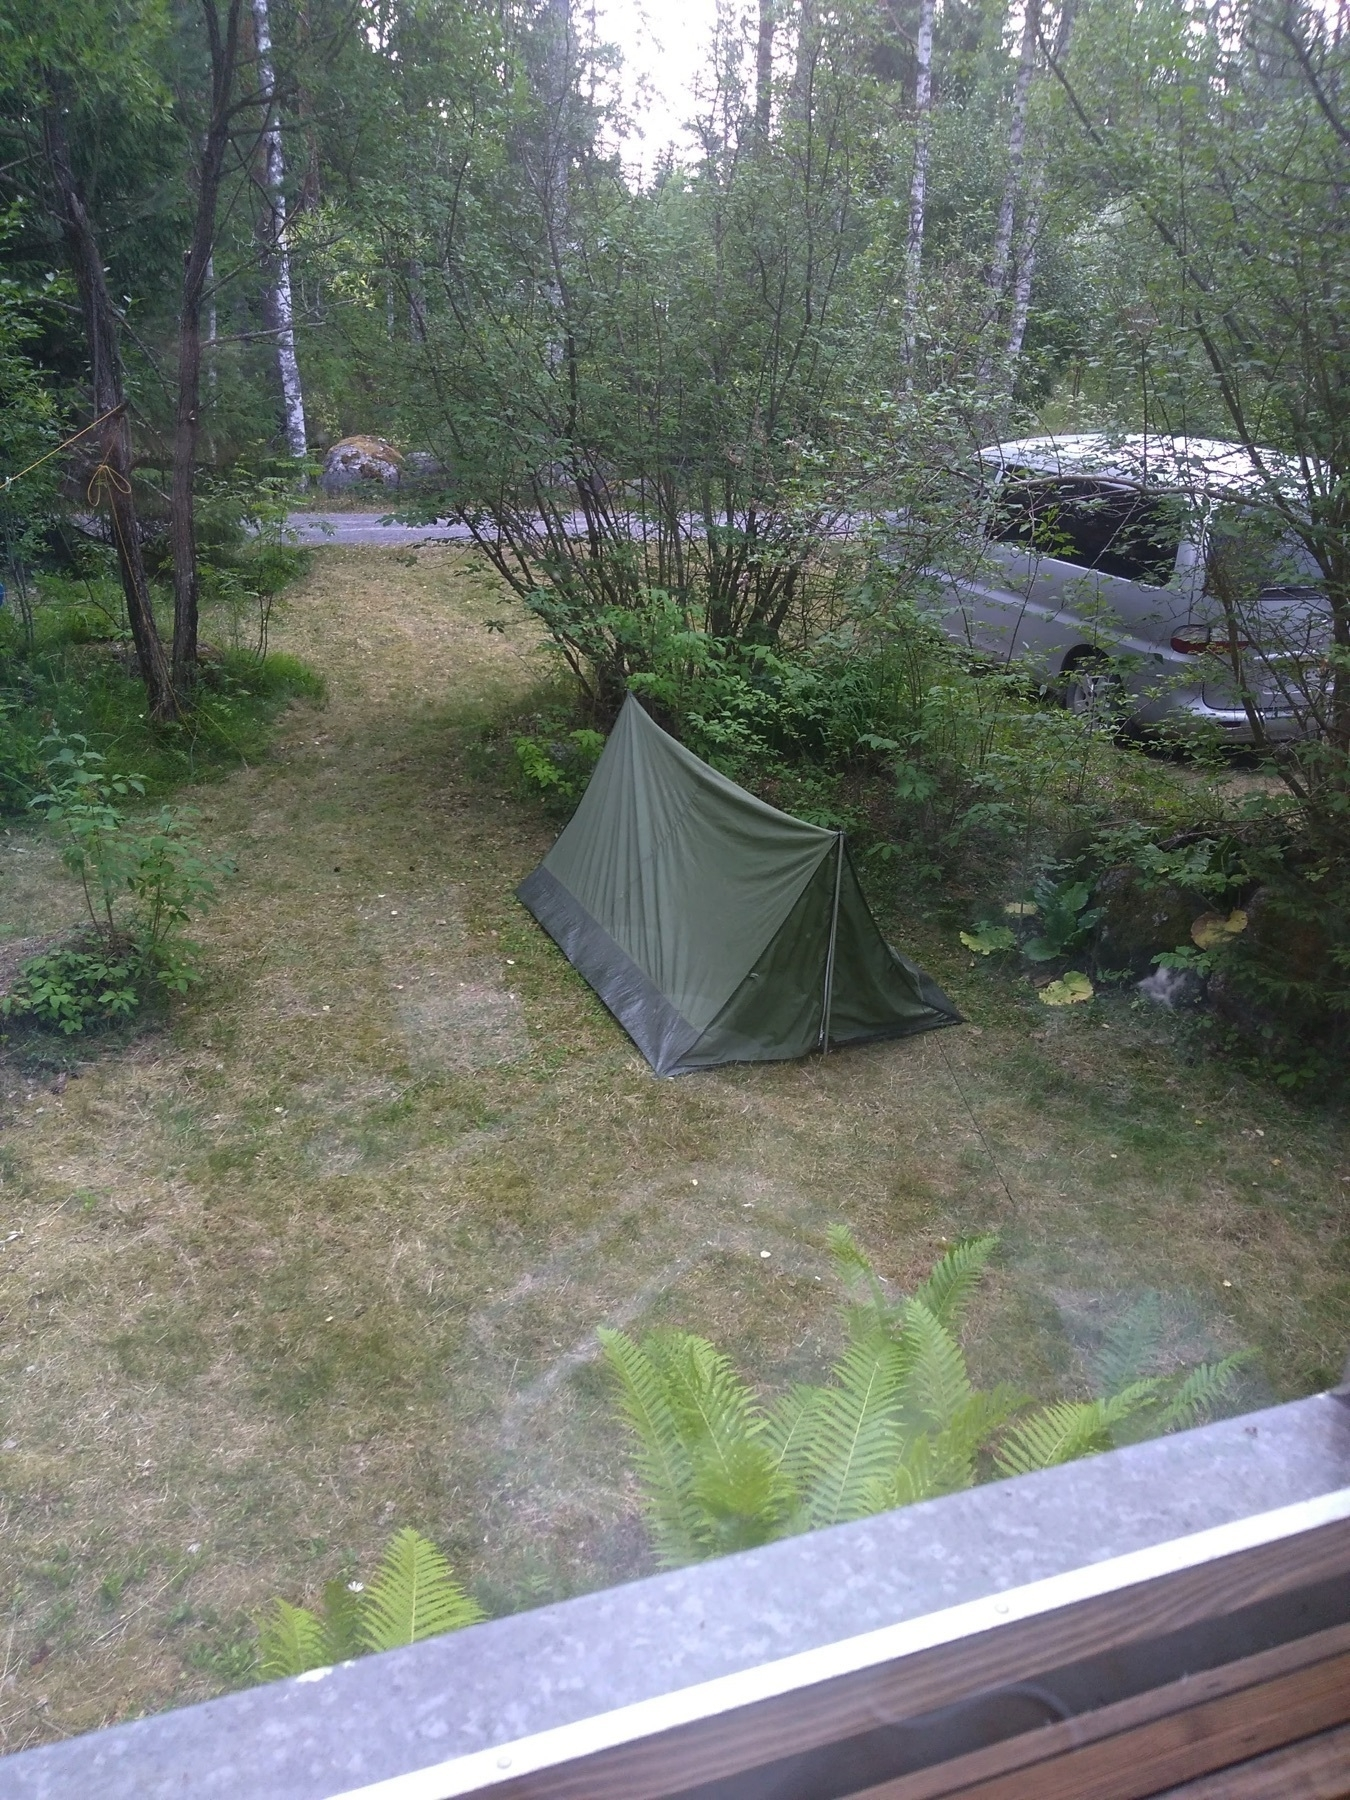 looking out from the window, a tent, a van, grass and some bushes in the garden